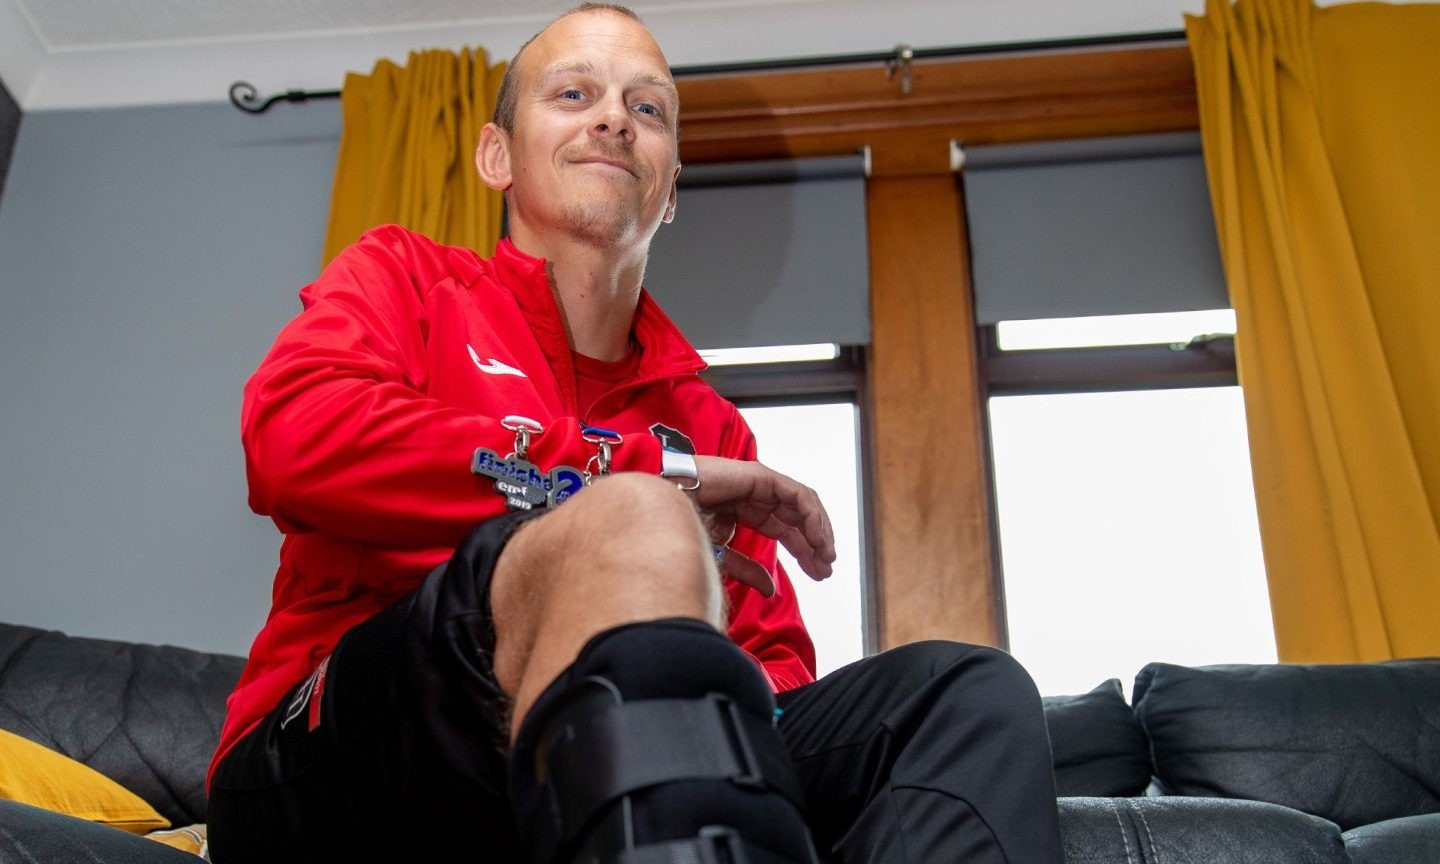 Mike Lewis-Copeland finished the Edinburgh Marathon despite a broken leg